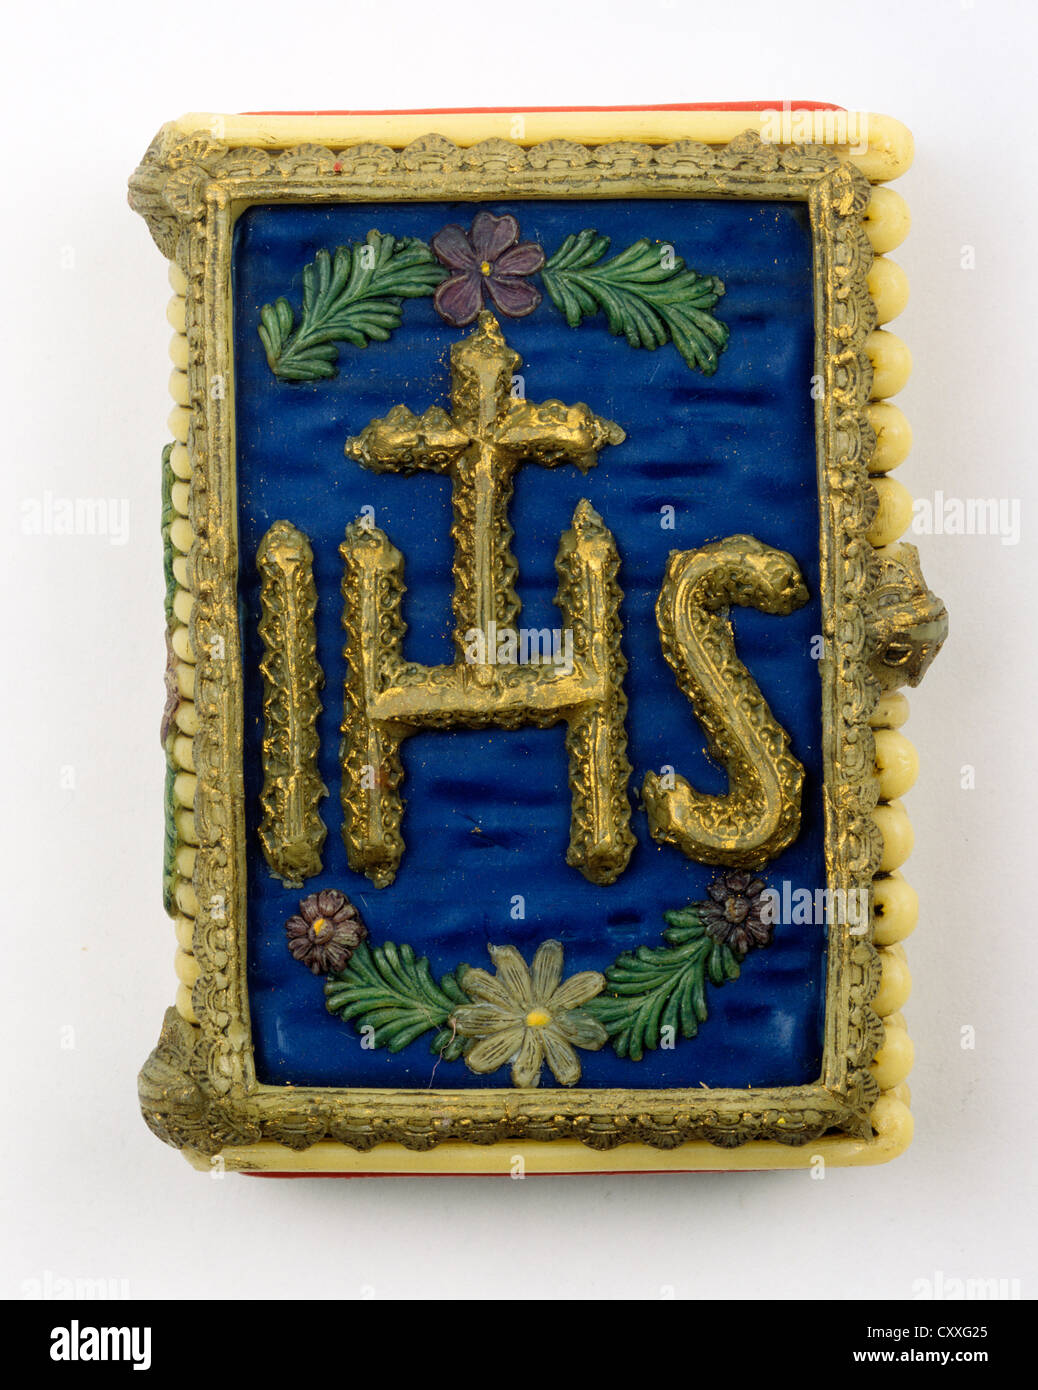 Wax taper in the shape of a book with the symbol of Jesus Christ, IHS - Stock Image